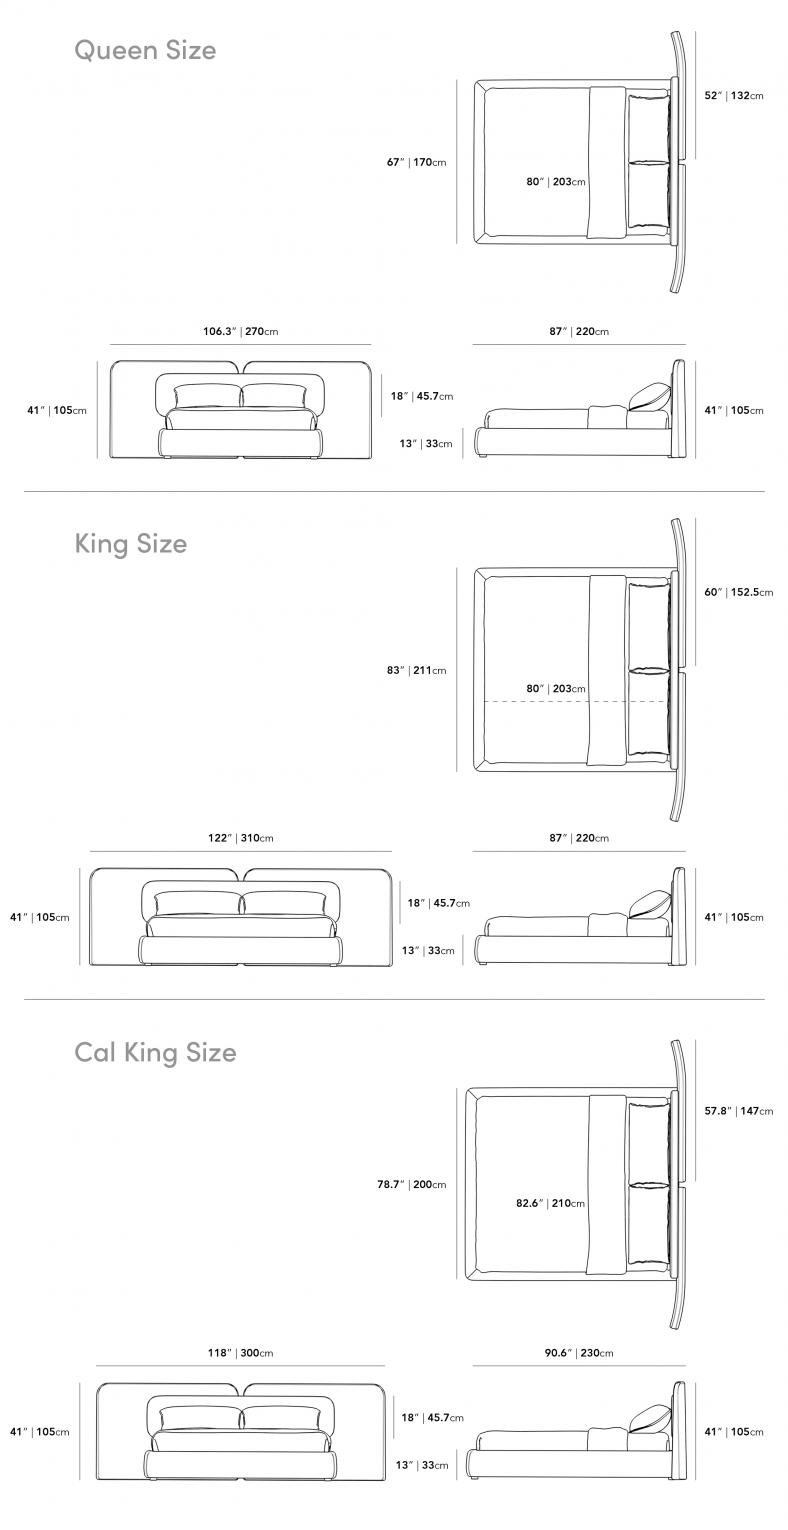 Dimensions for Angelo Bed